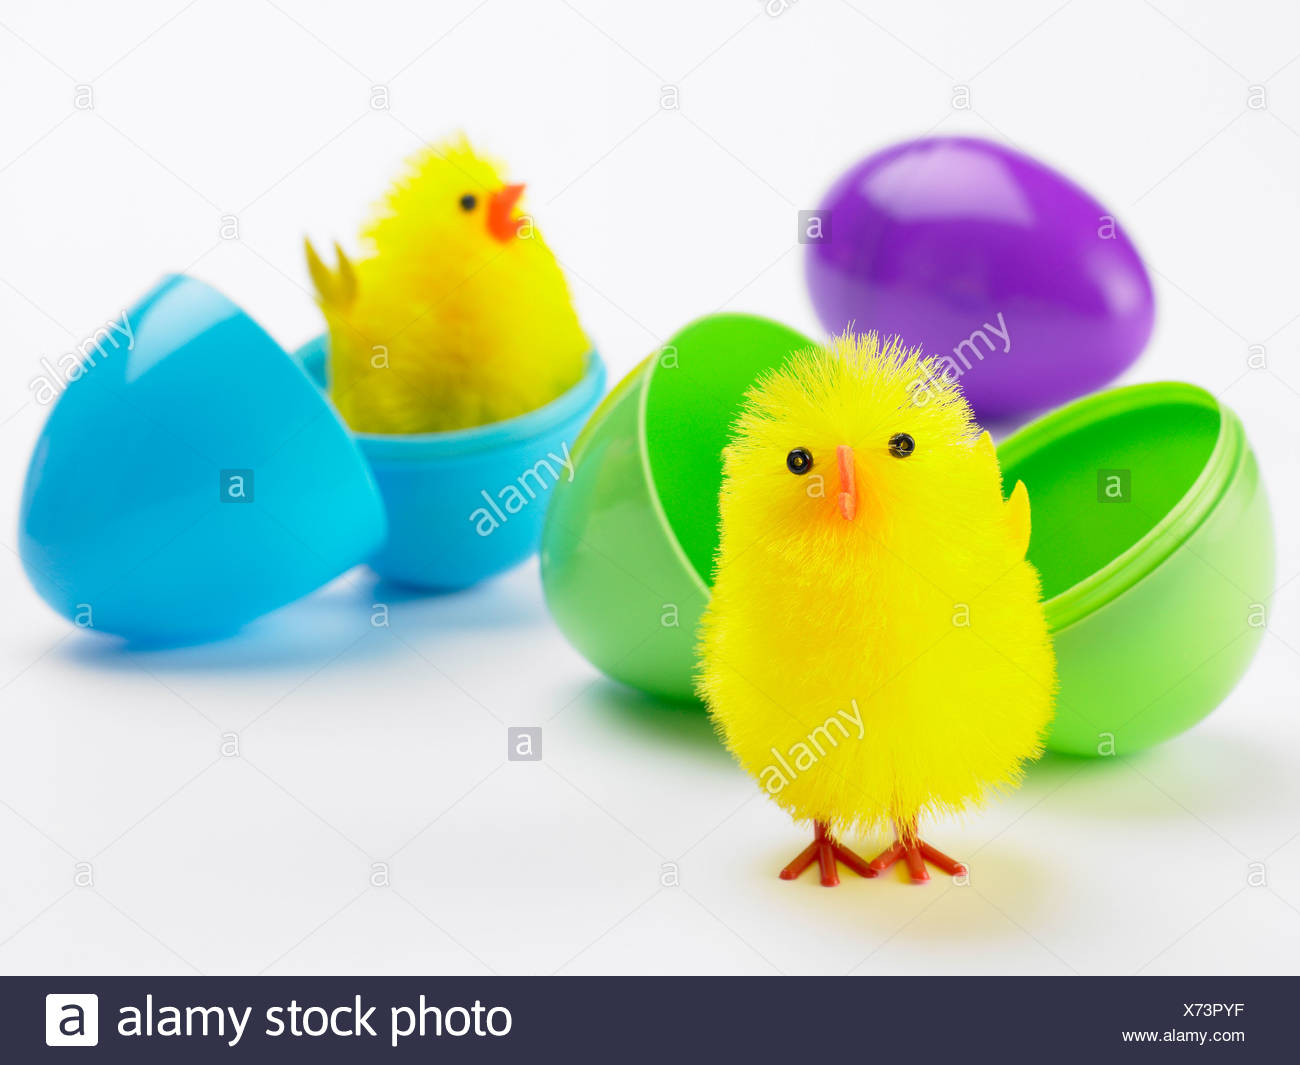 Easter Chicks Hatching Out Of Eggs - Stock Image